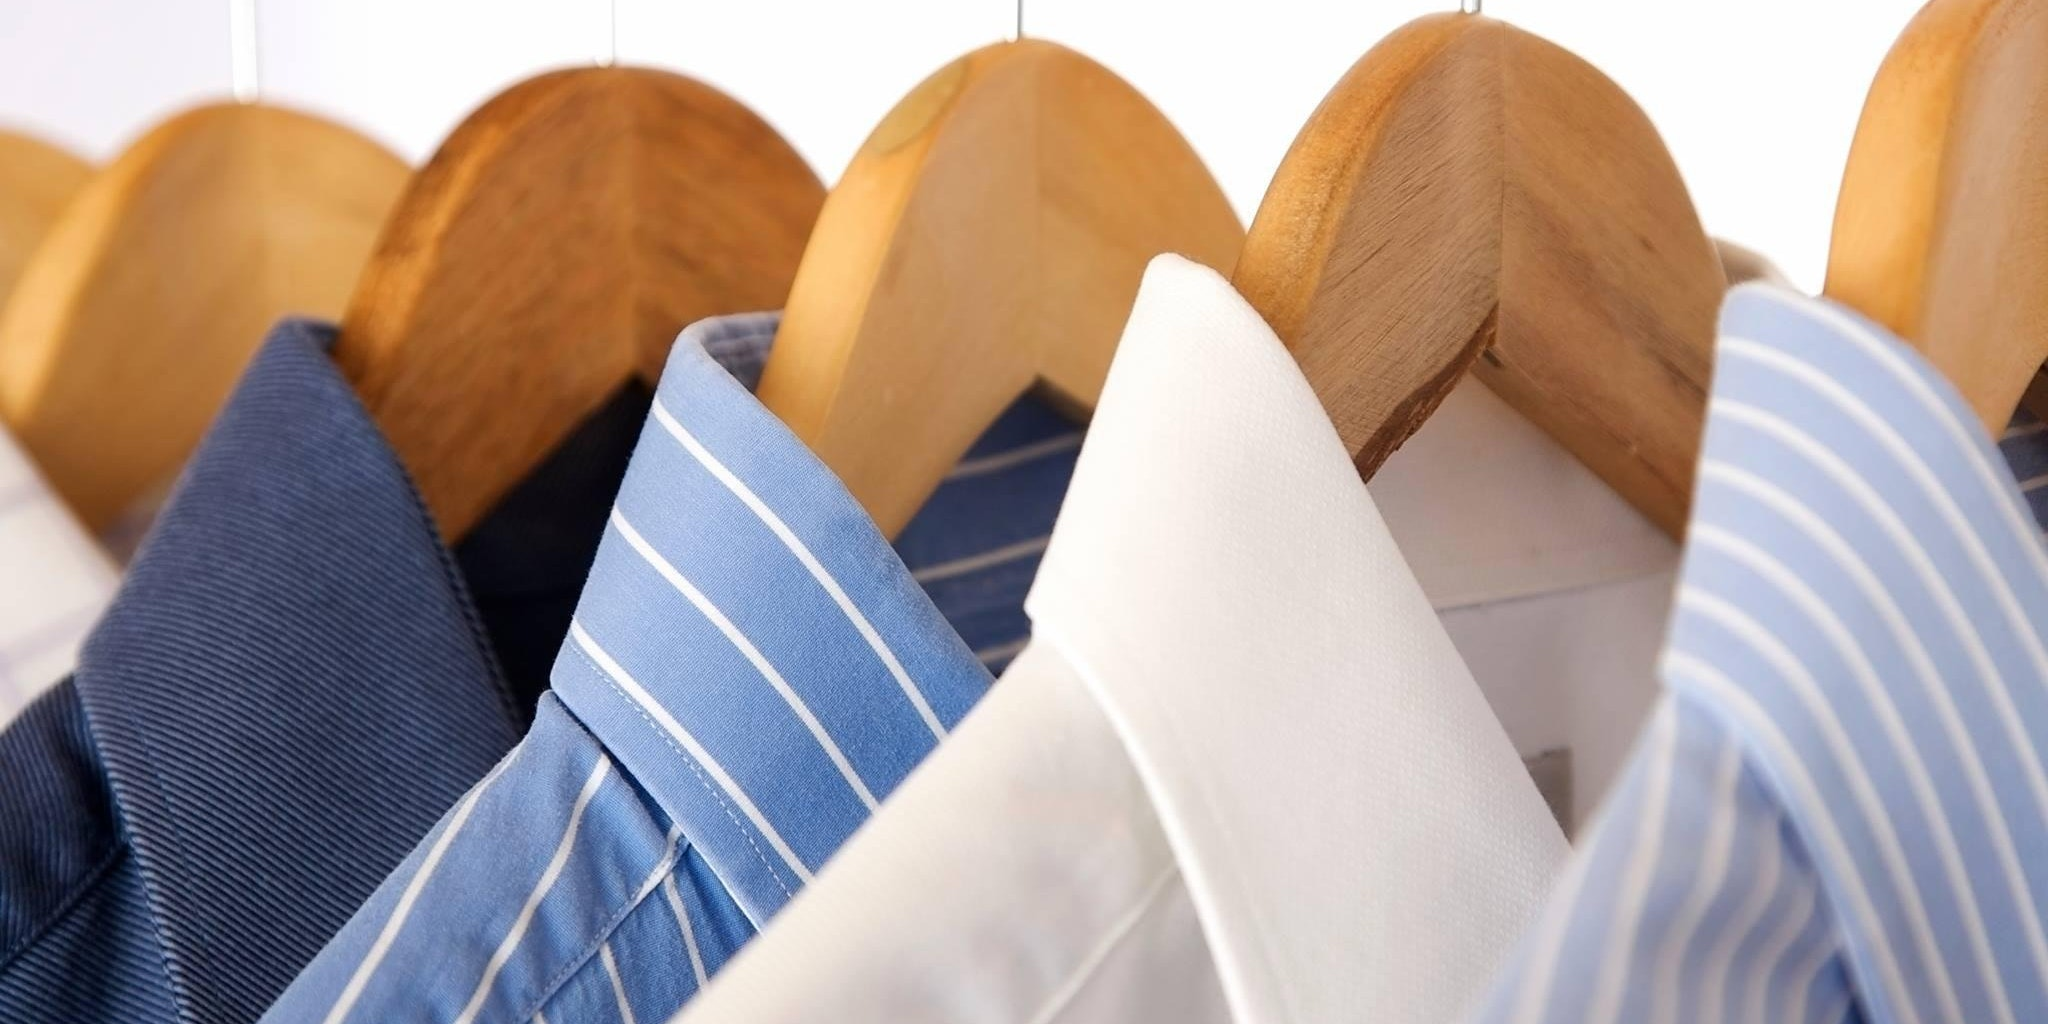 Corry's Toxin Free Dry Cleaners